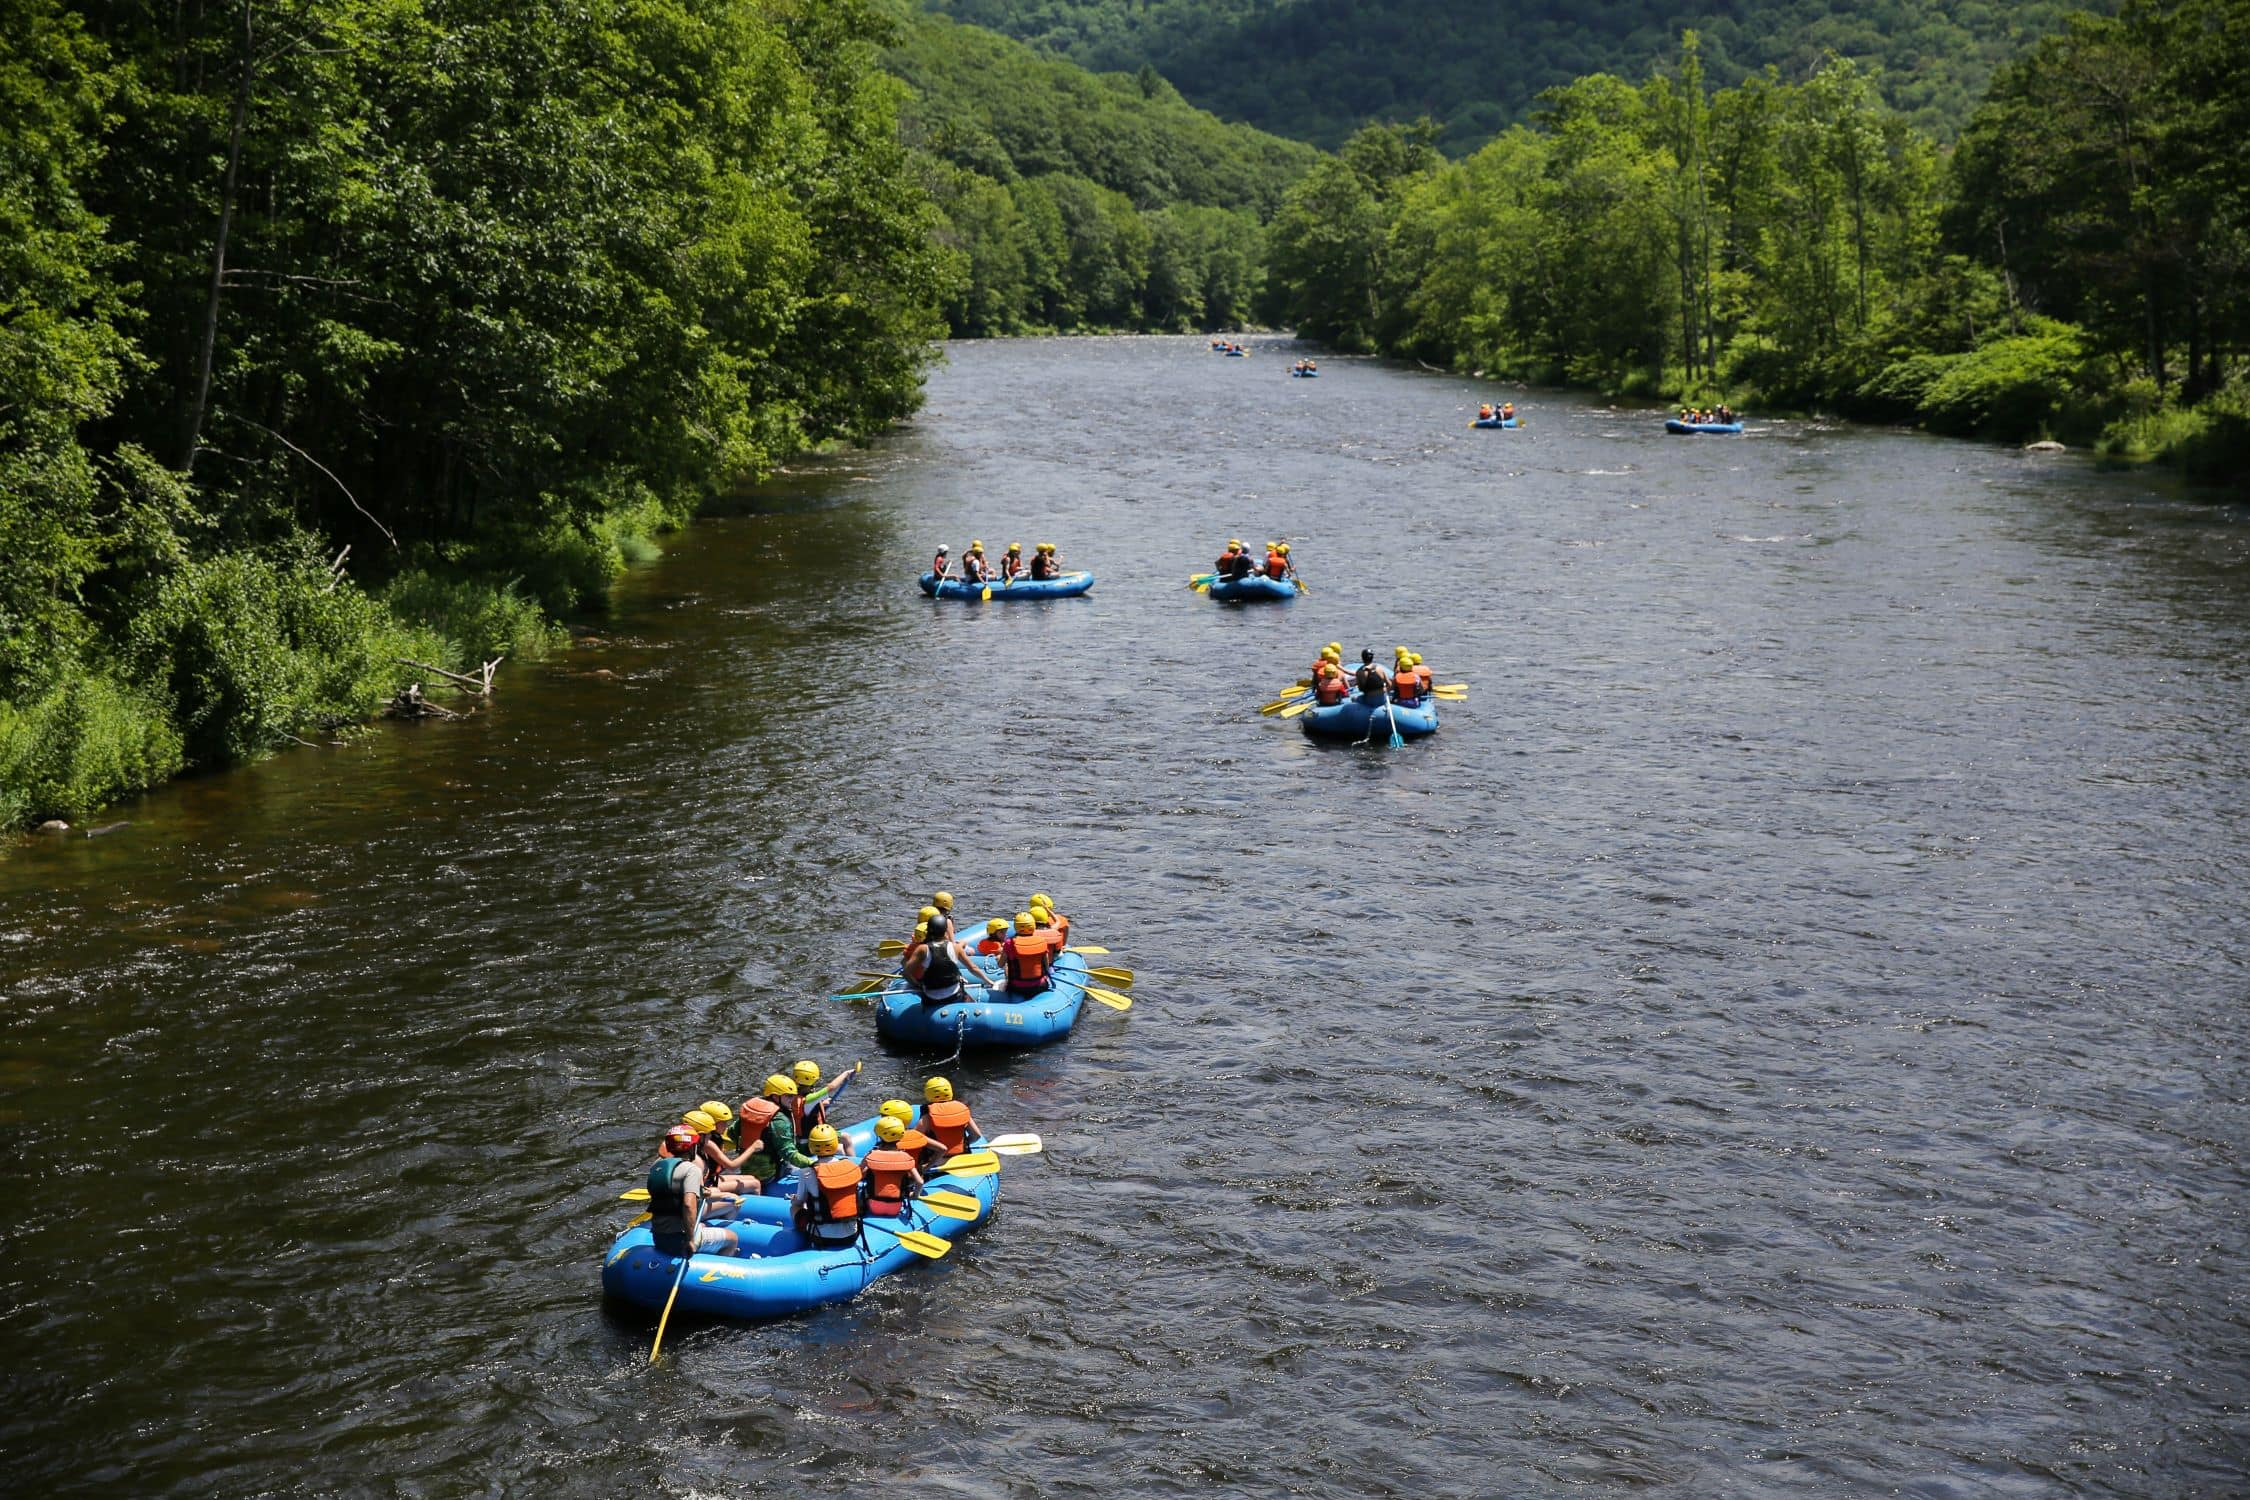 Rafting down a river during a teen adventure program in New England